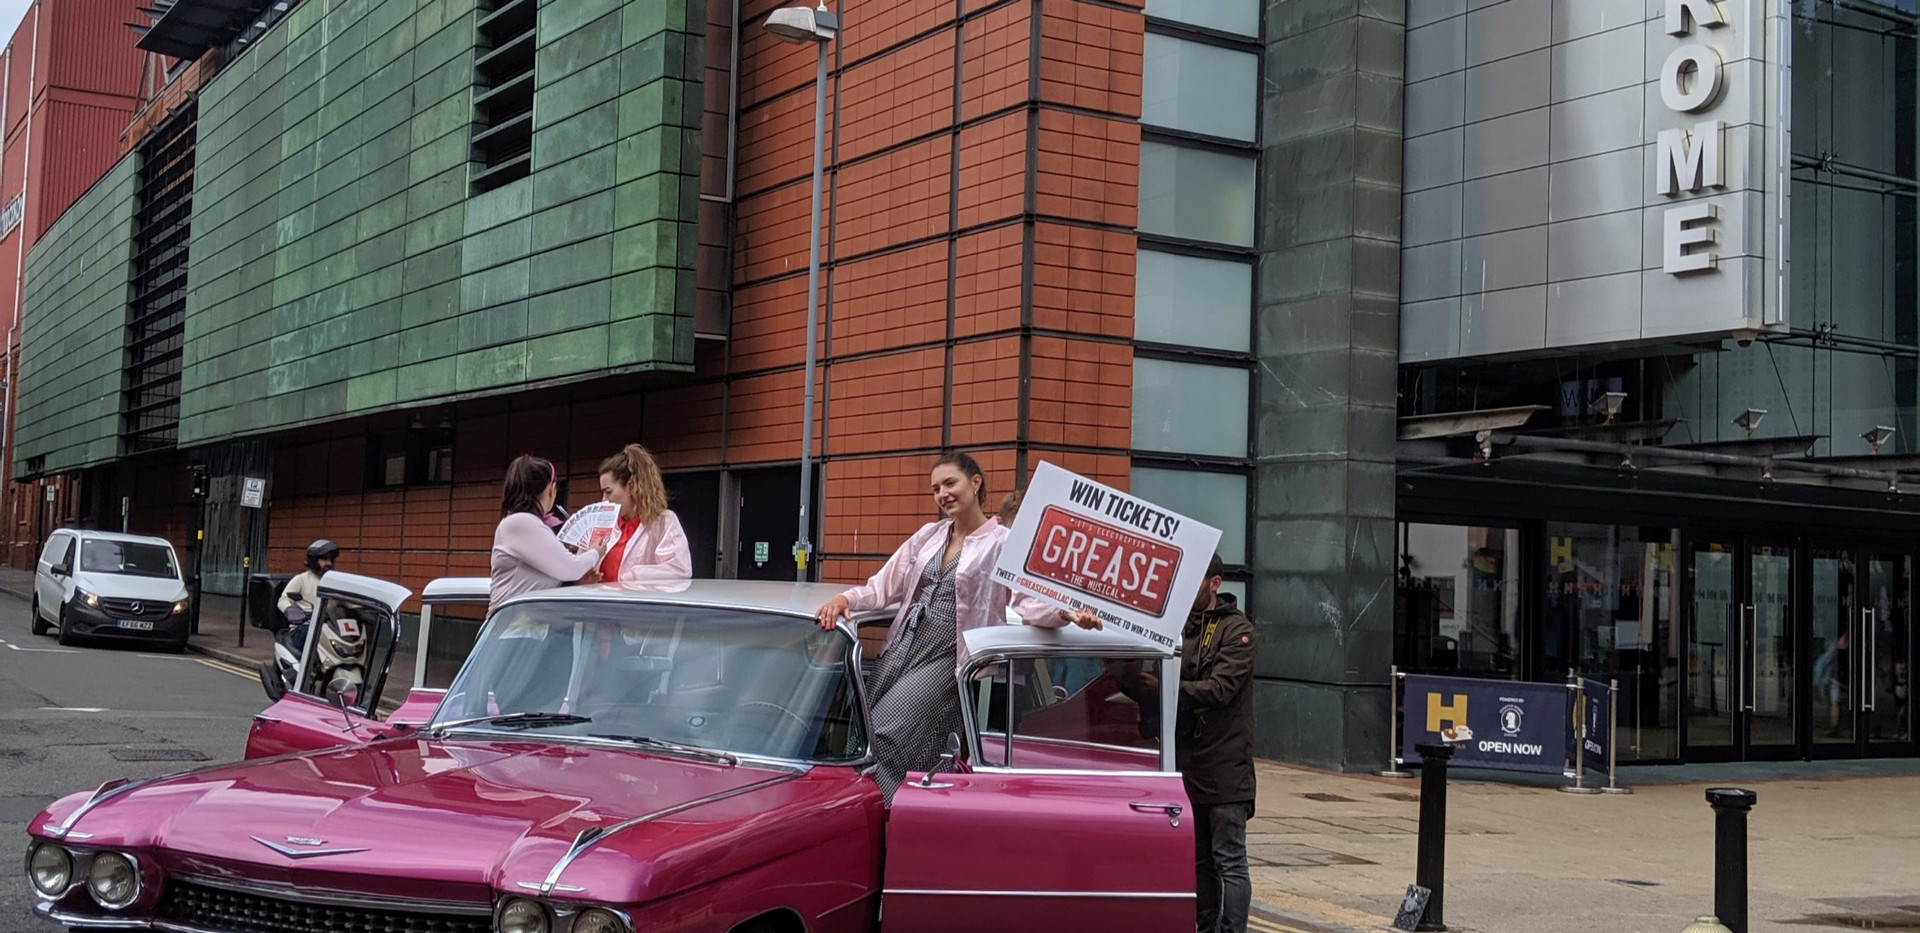 Advertising the new musical of grease.